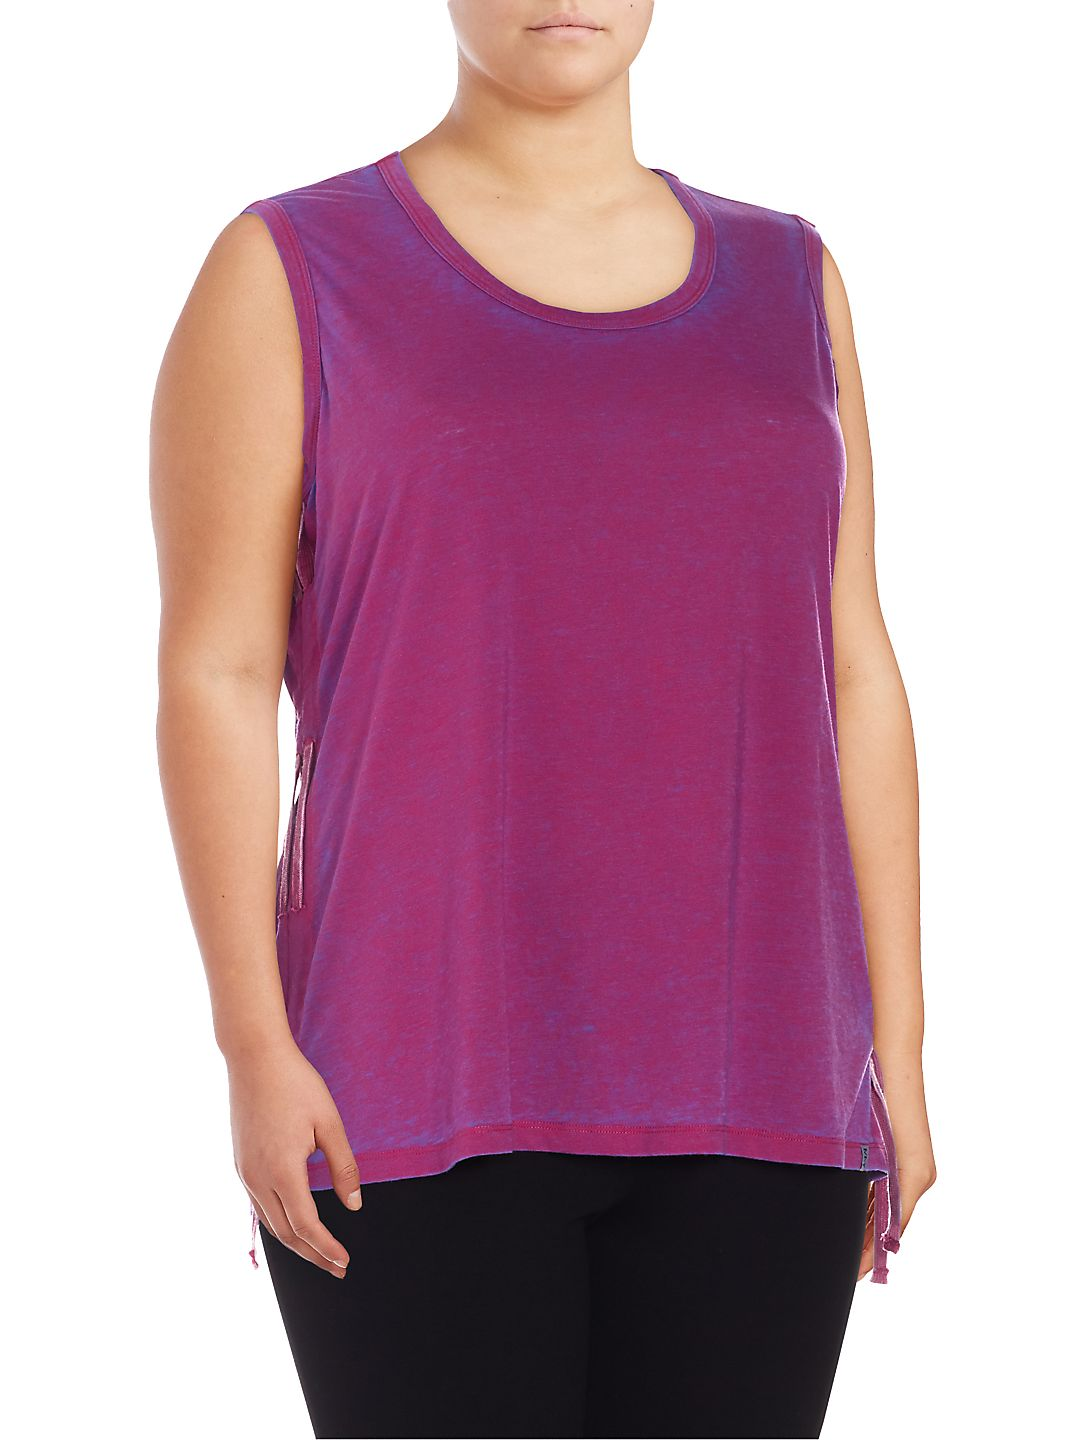 Plus Side-Tie Athletic Tank